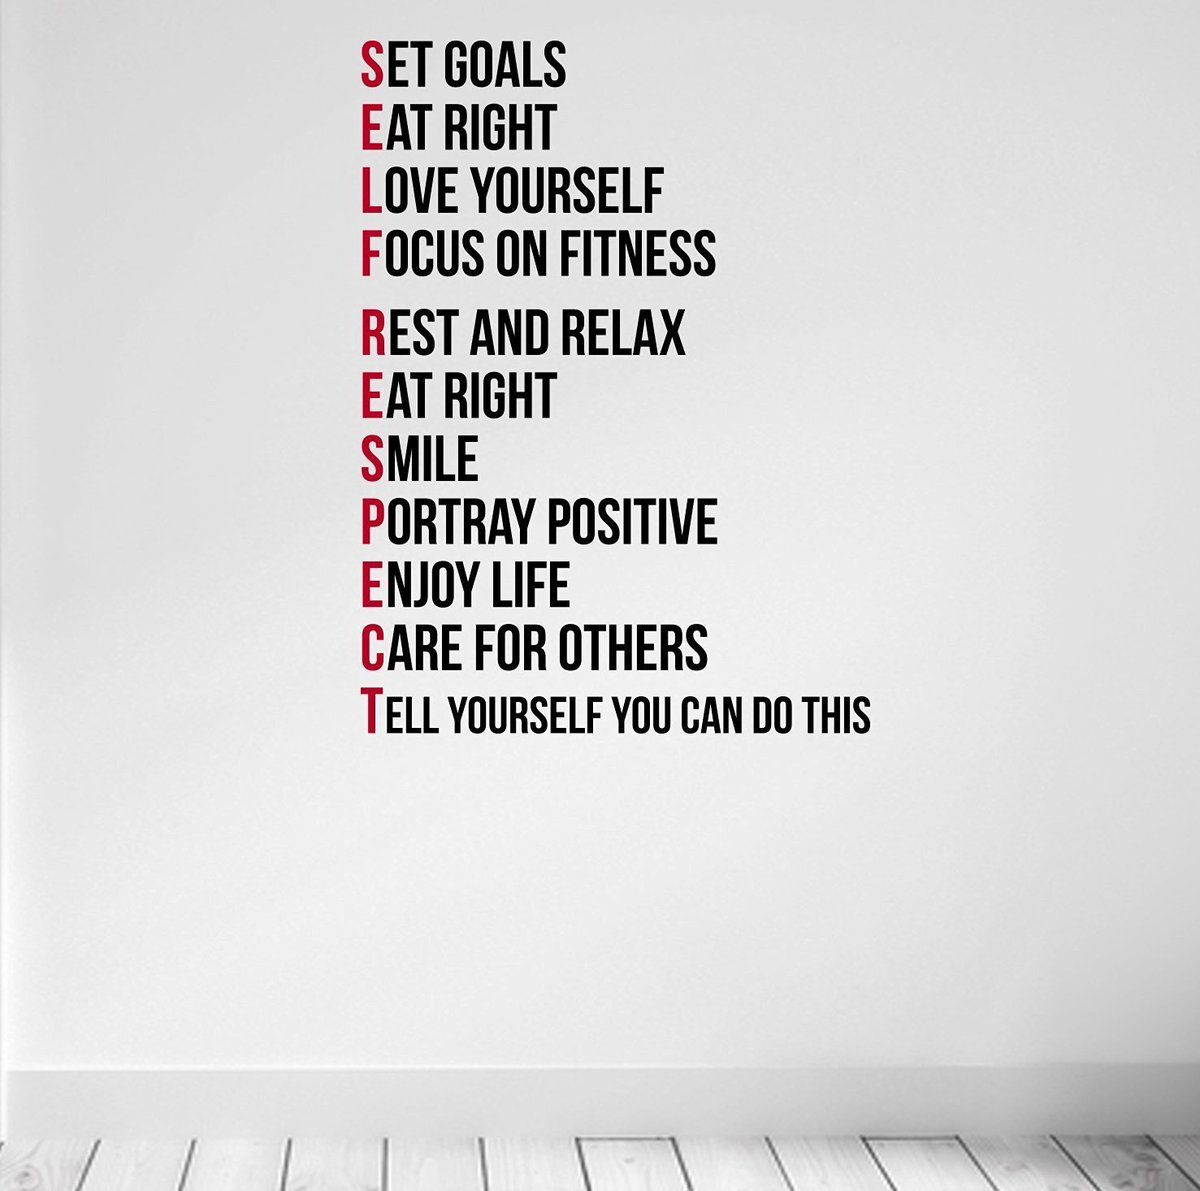 #WallArt #SELFRESPECT #Motivates Decal #Fitting #WellBeing  http:// ow.ly/wSeb3094atA  &nbsp;   <br>http://pic.twitter.com/W2OpU2ctKS #WednesdayWisdom #healthyandfit